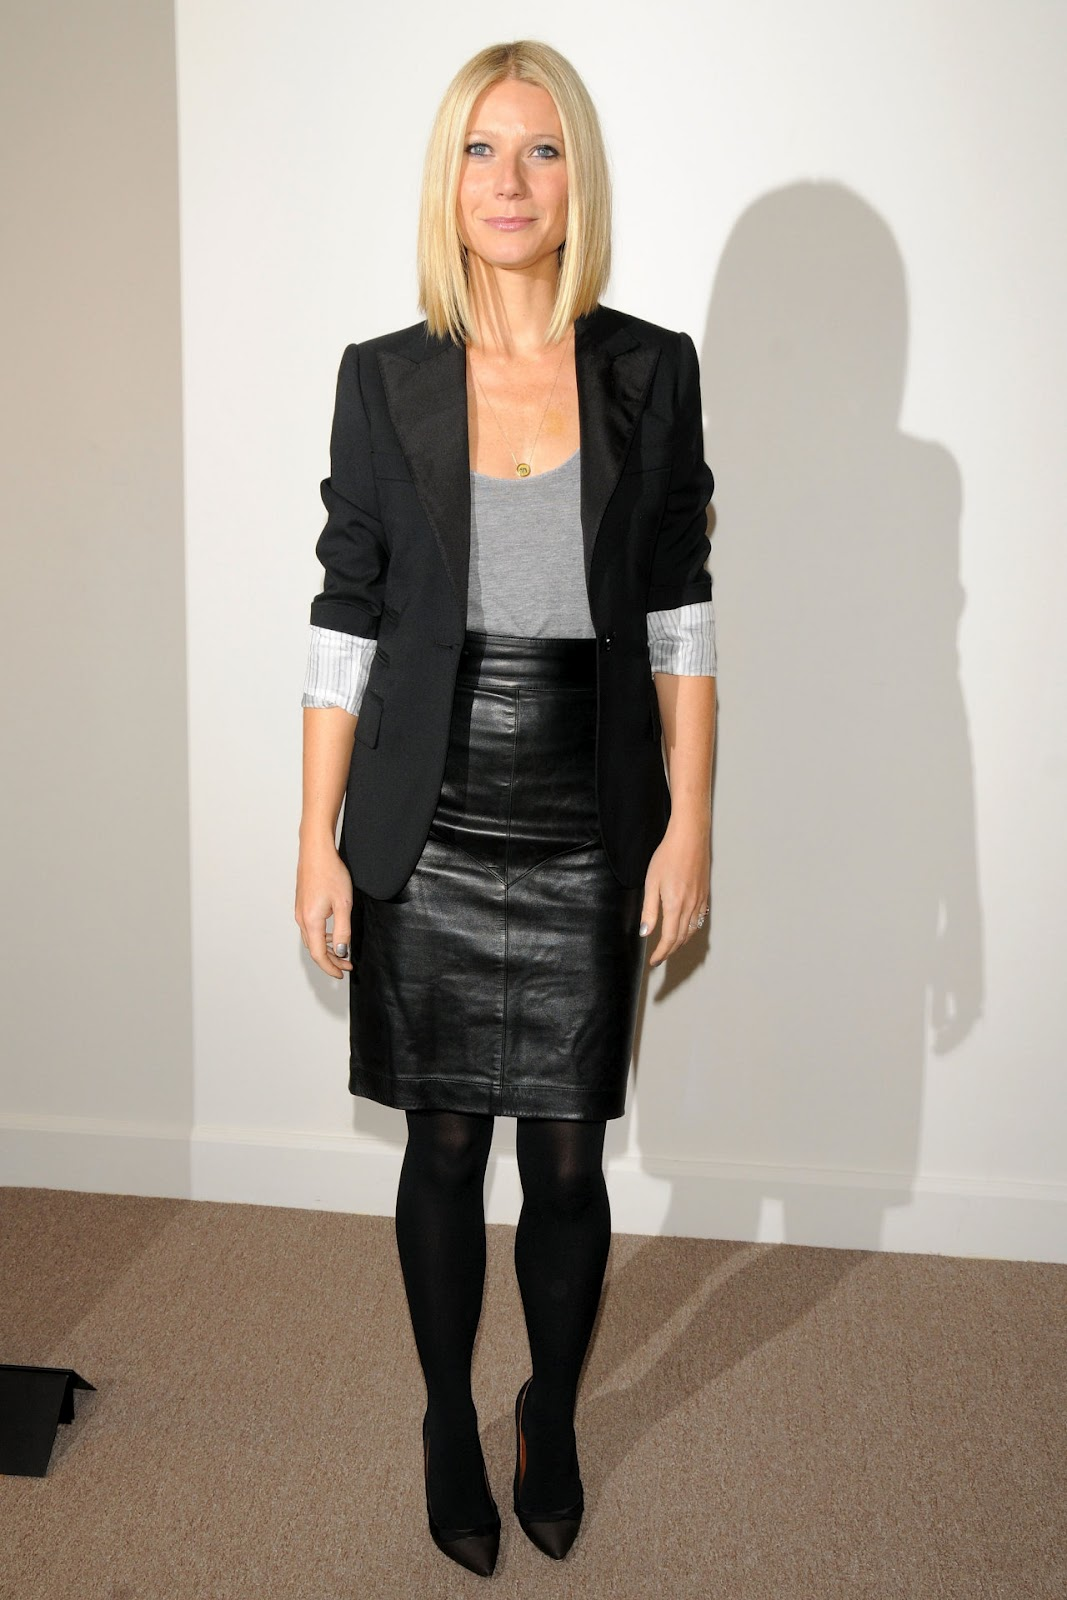 Gwyneth Paltrow Pictures Gallery 20 Film Actresses